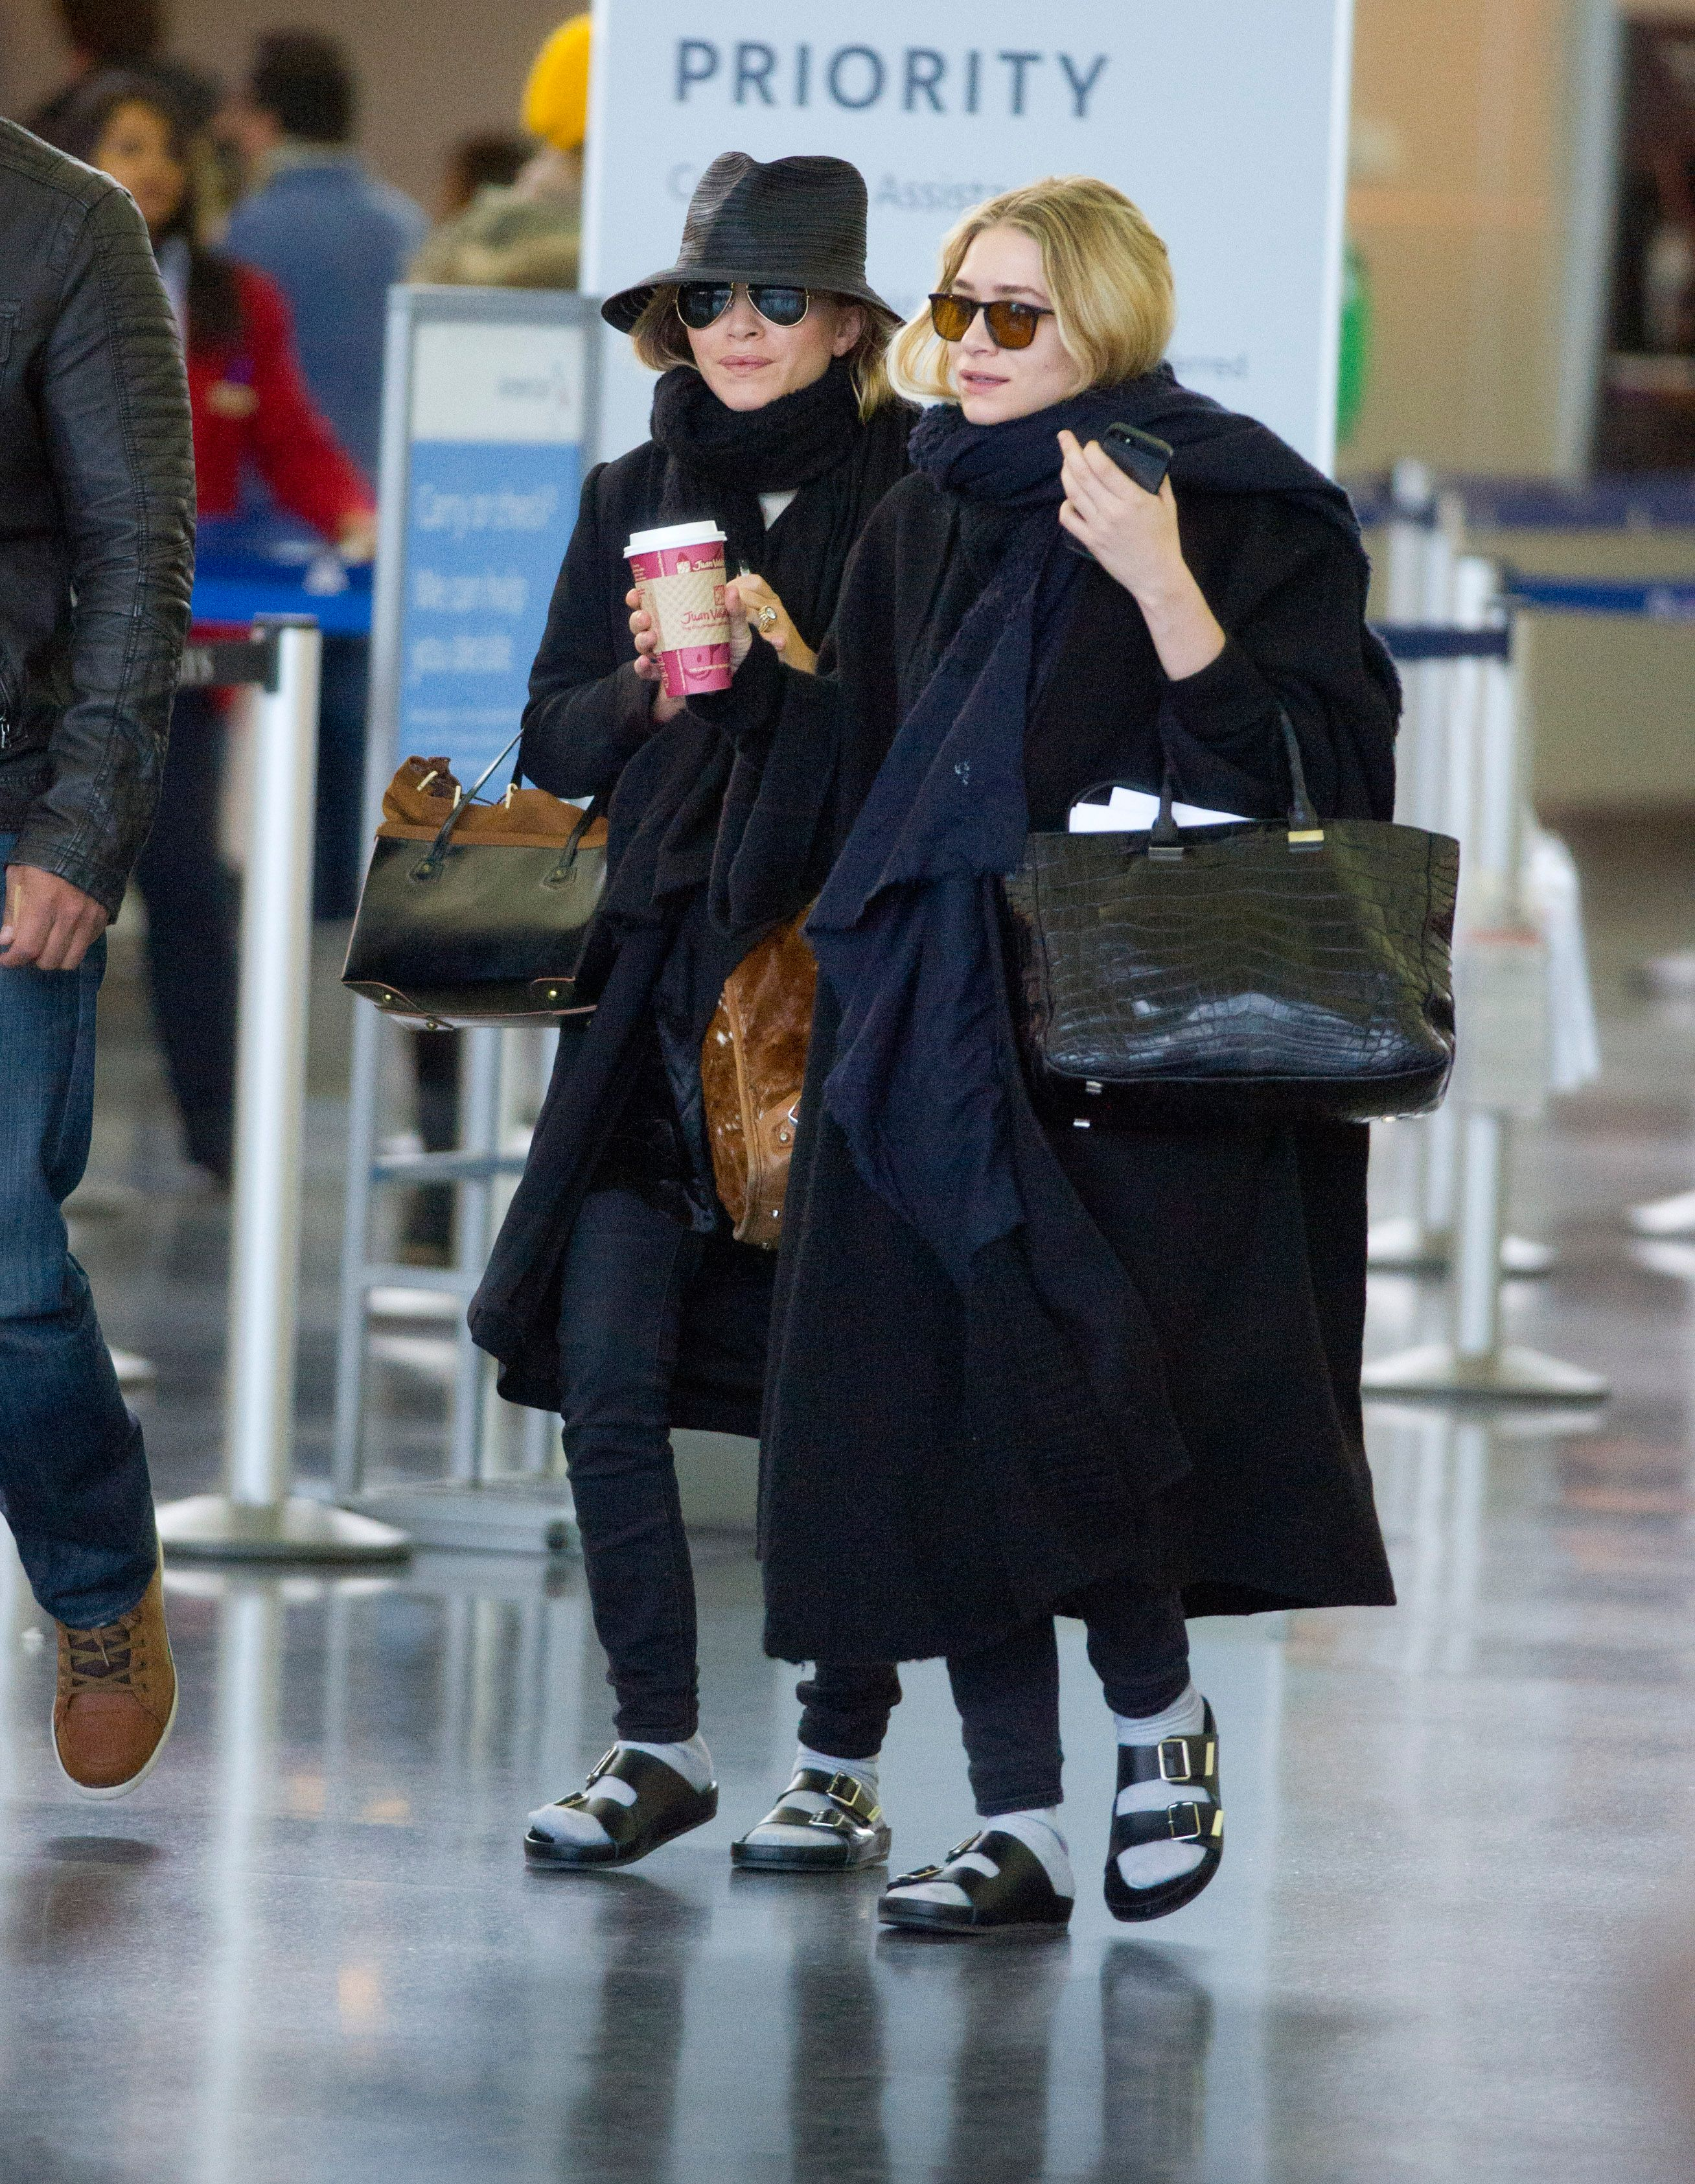 f5923b034a30bd Mary Kate + Ashley Olsen sport matching Birkenstocks and socks at the  airport     Fashion  StreetStyle